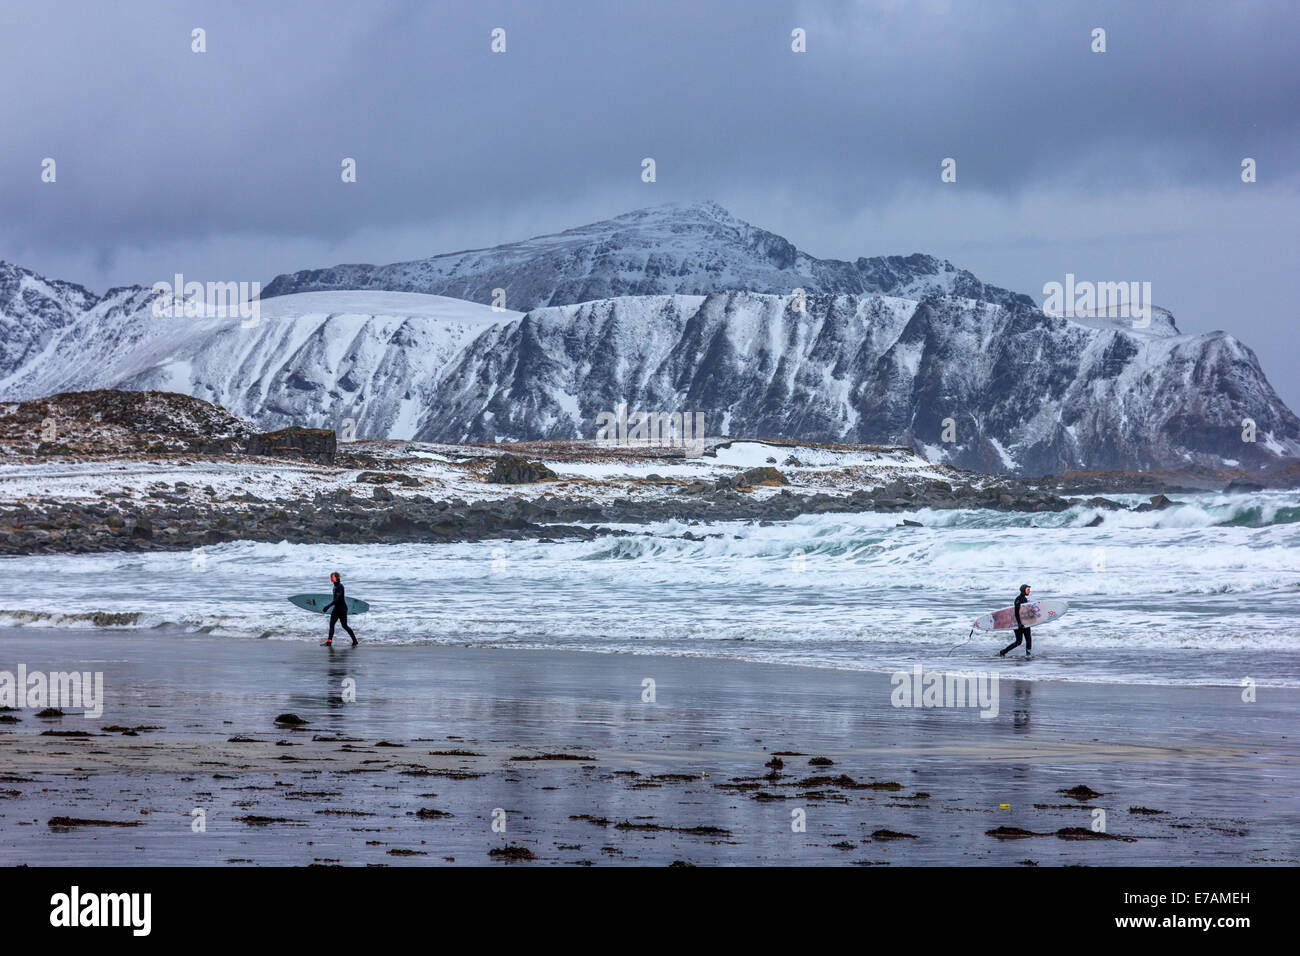 Winter surfers at the Lofoten islands - Stock Image